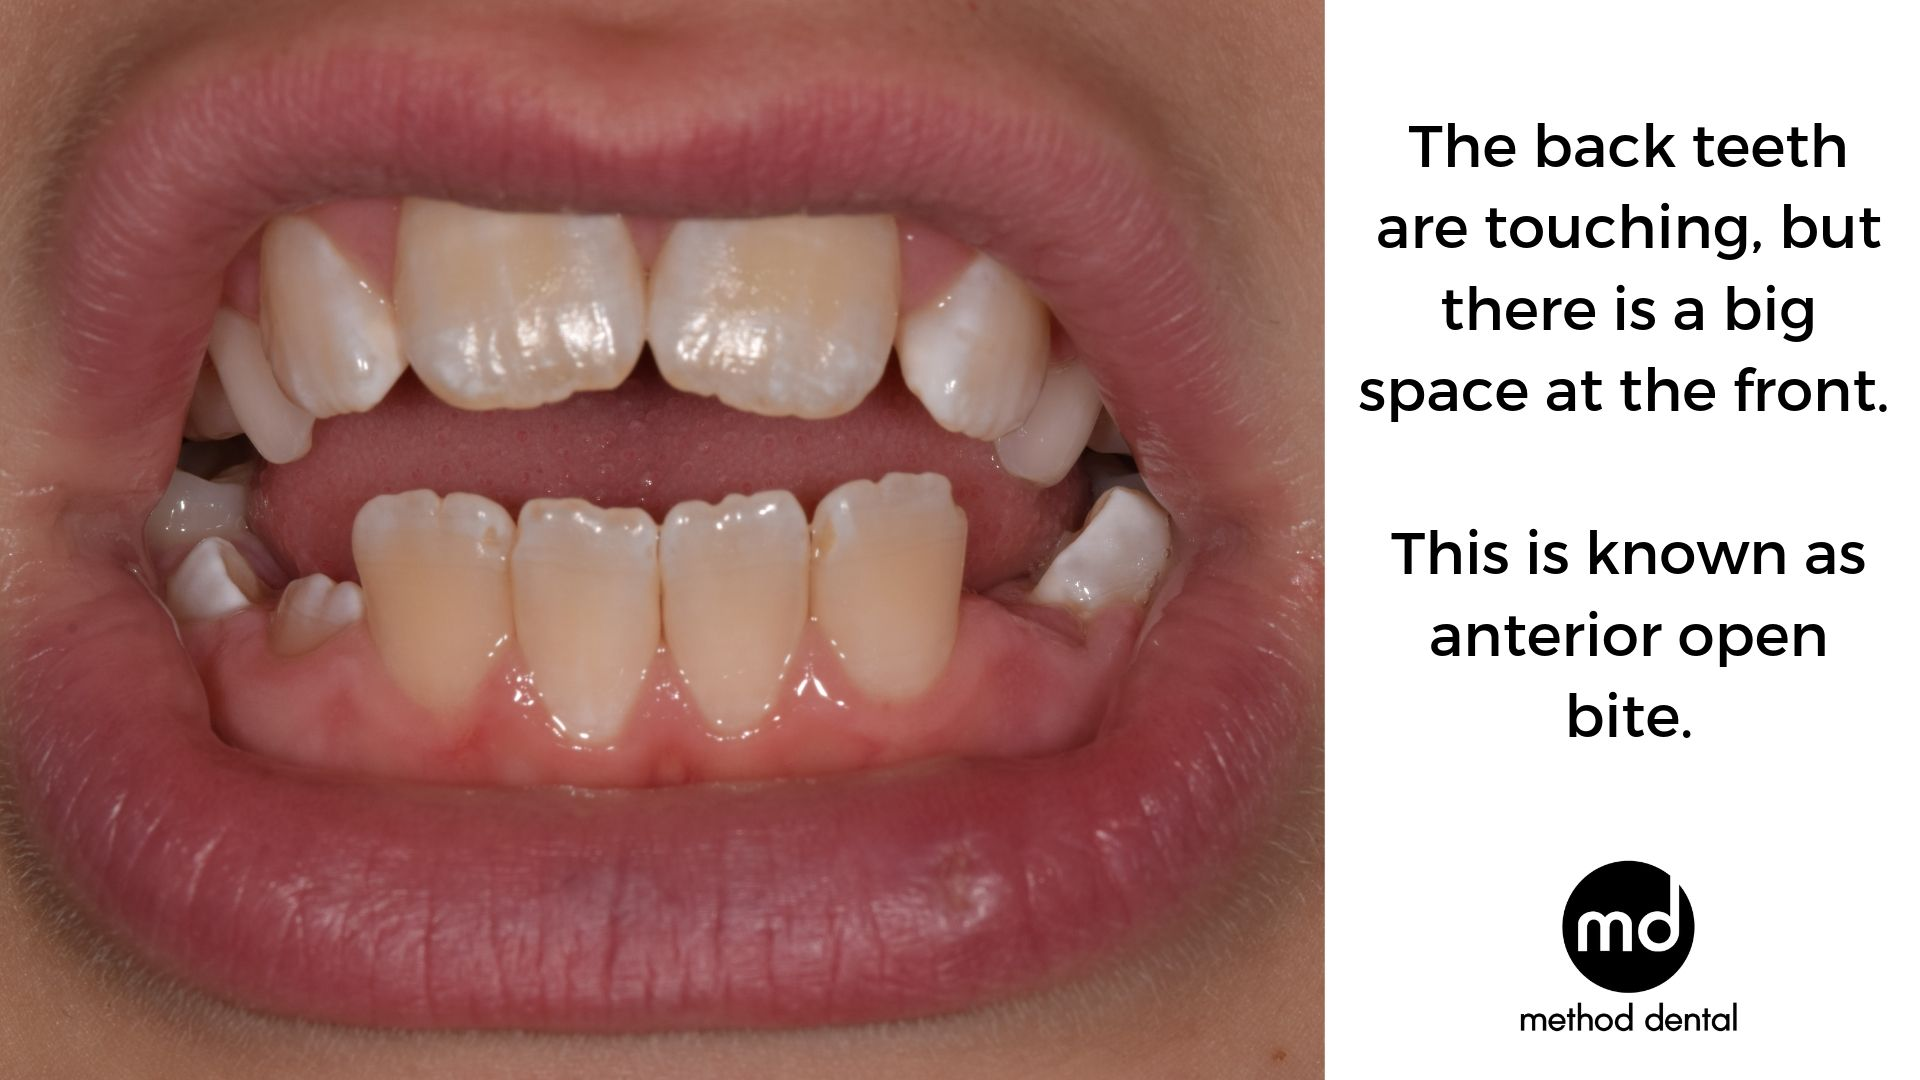 A ten year old child with anterior open bite where the back teeth are touching but the front teeth do not and there is a large gap